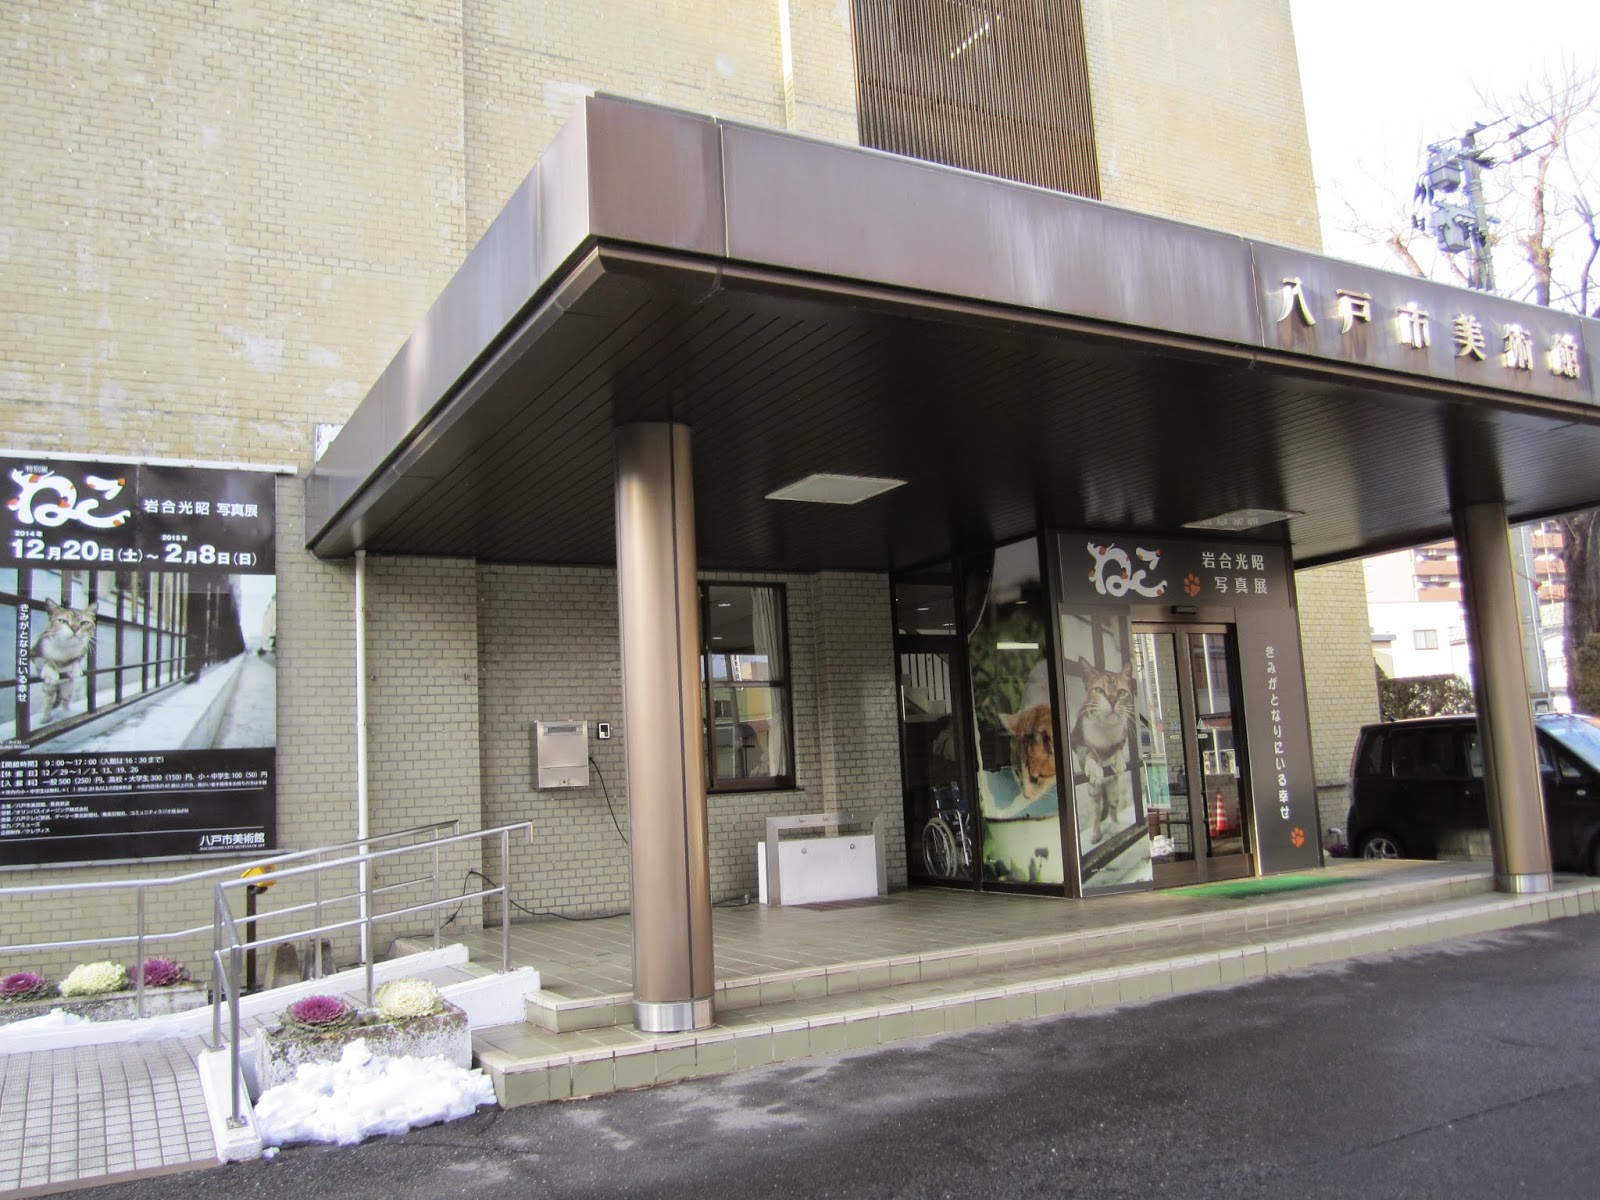 Hachinohe City Musem of Art Special Exhibit Neko by Iwago Mitsuaki 八戸市美術館 特別展「ねこ 岩合光昭写真展」